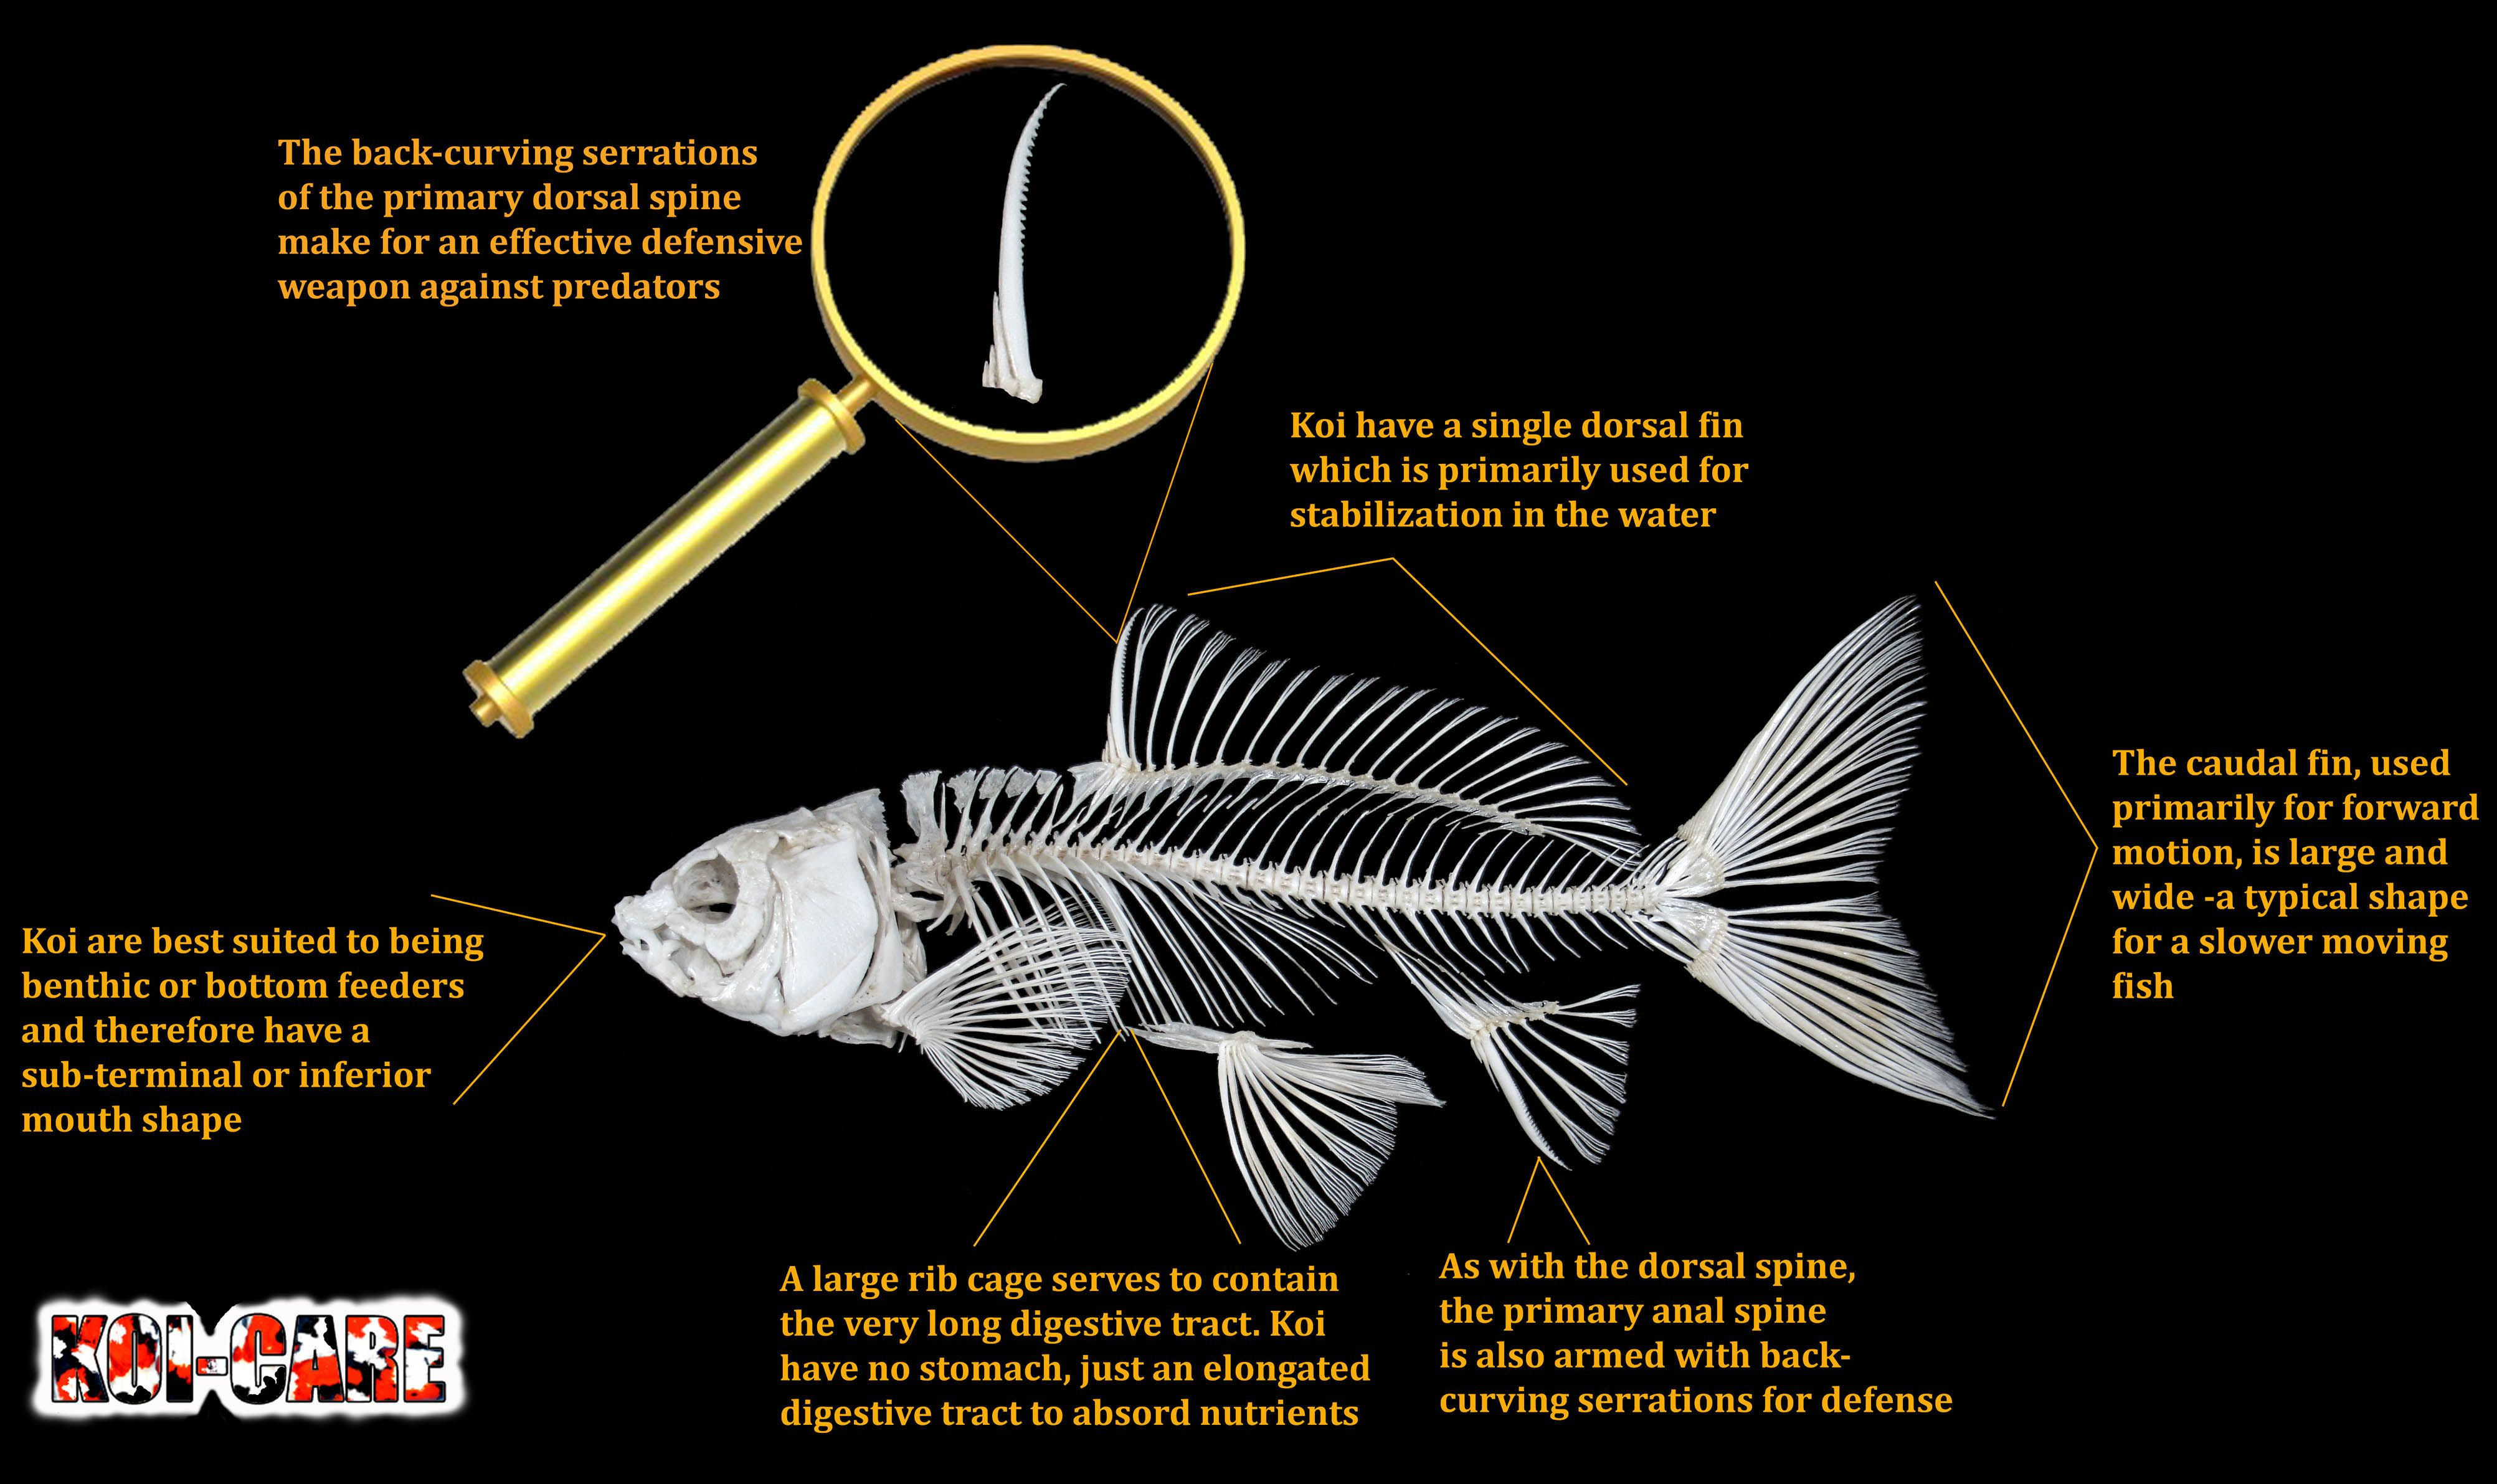 Koi Fish Skeleton Anatomy Diagram, Koi Fish External Anatomy Diagram